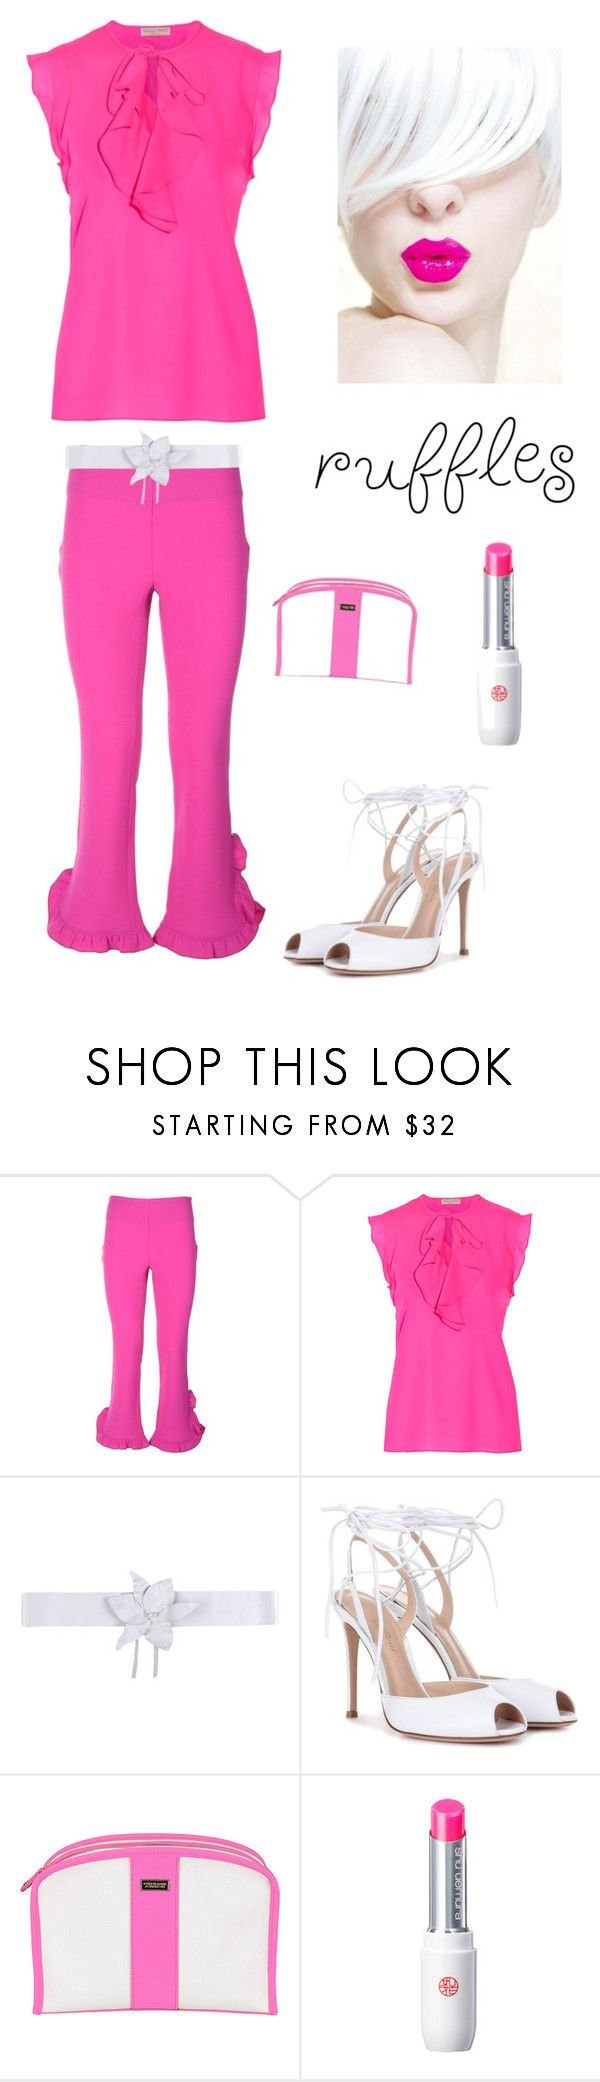 """""""Spring In Ruffles"""" by kotnourka ❤ liked on Polyvore featuring L'Autre Chose, Emilio Pucci, Space Style Concept, Gianvito Rossi, Stephanie Johnson and shu uemura"""